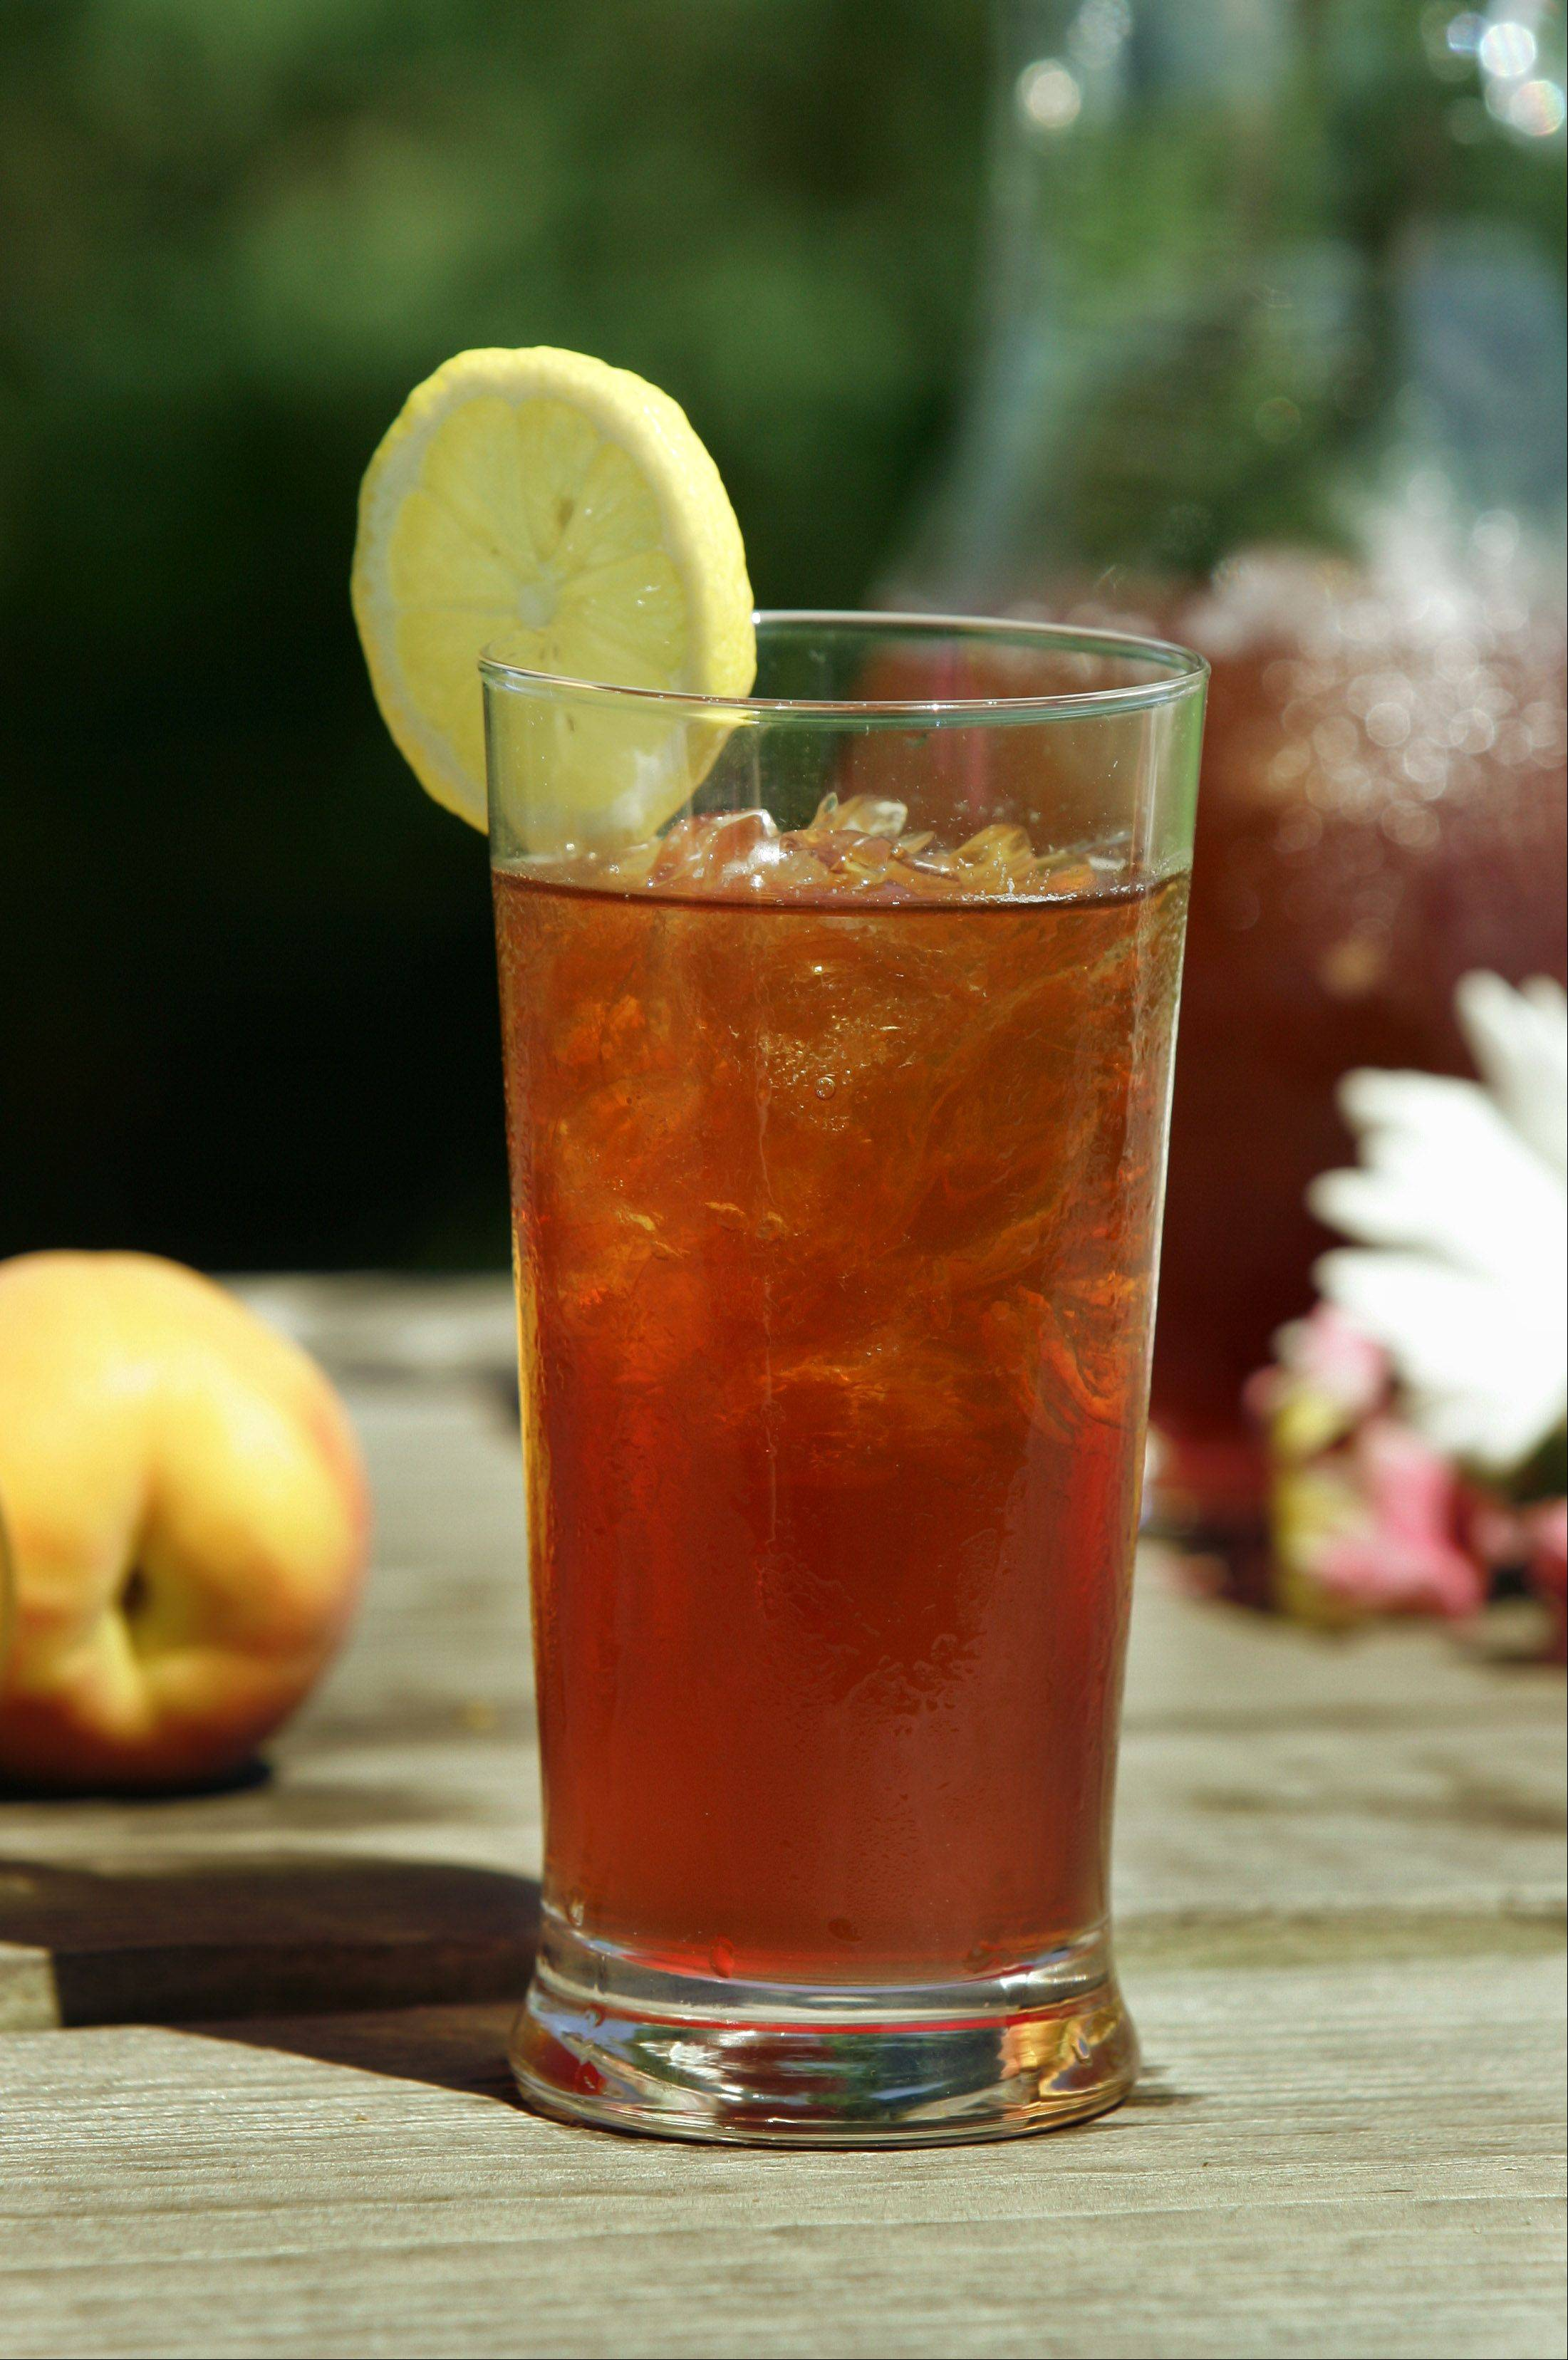 Home-brewed iced tea is richer in antioxidants than commercially prepared versions.